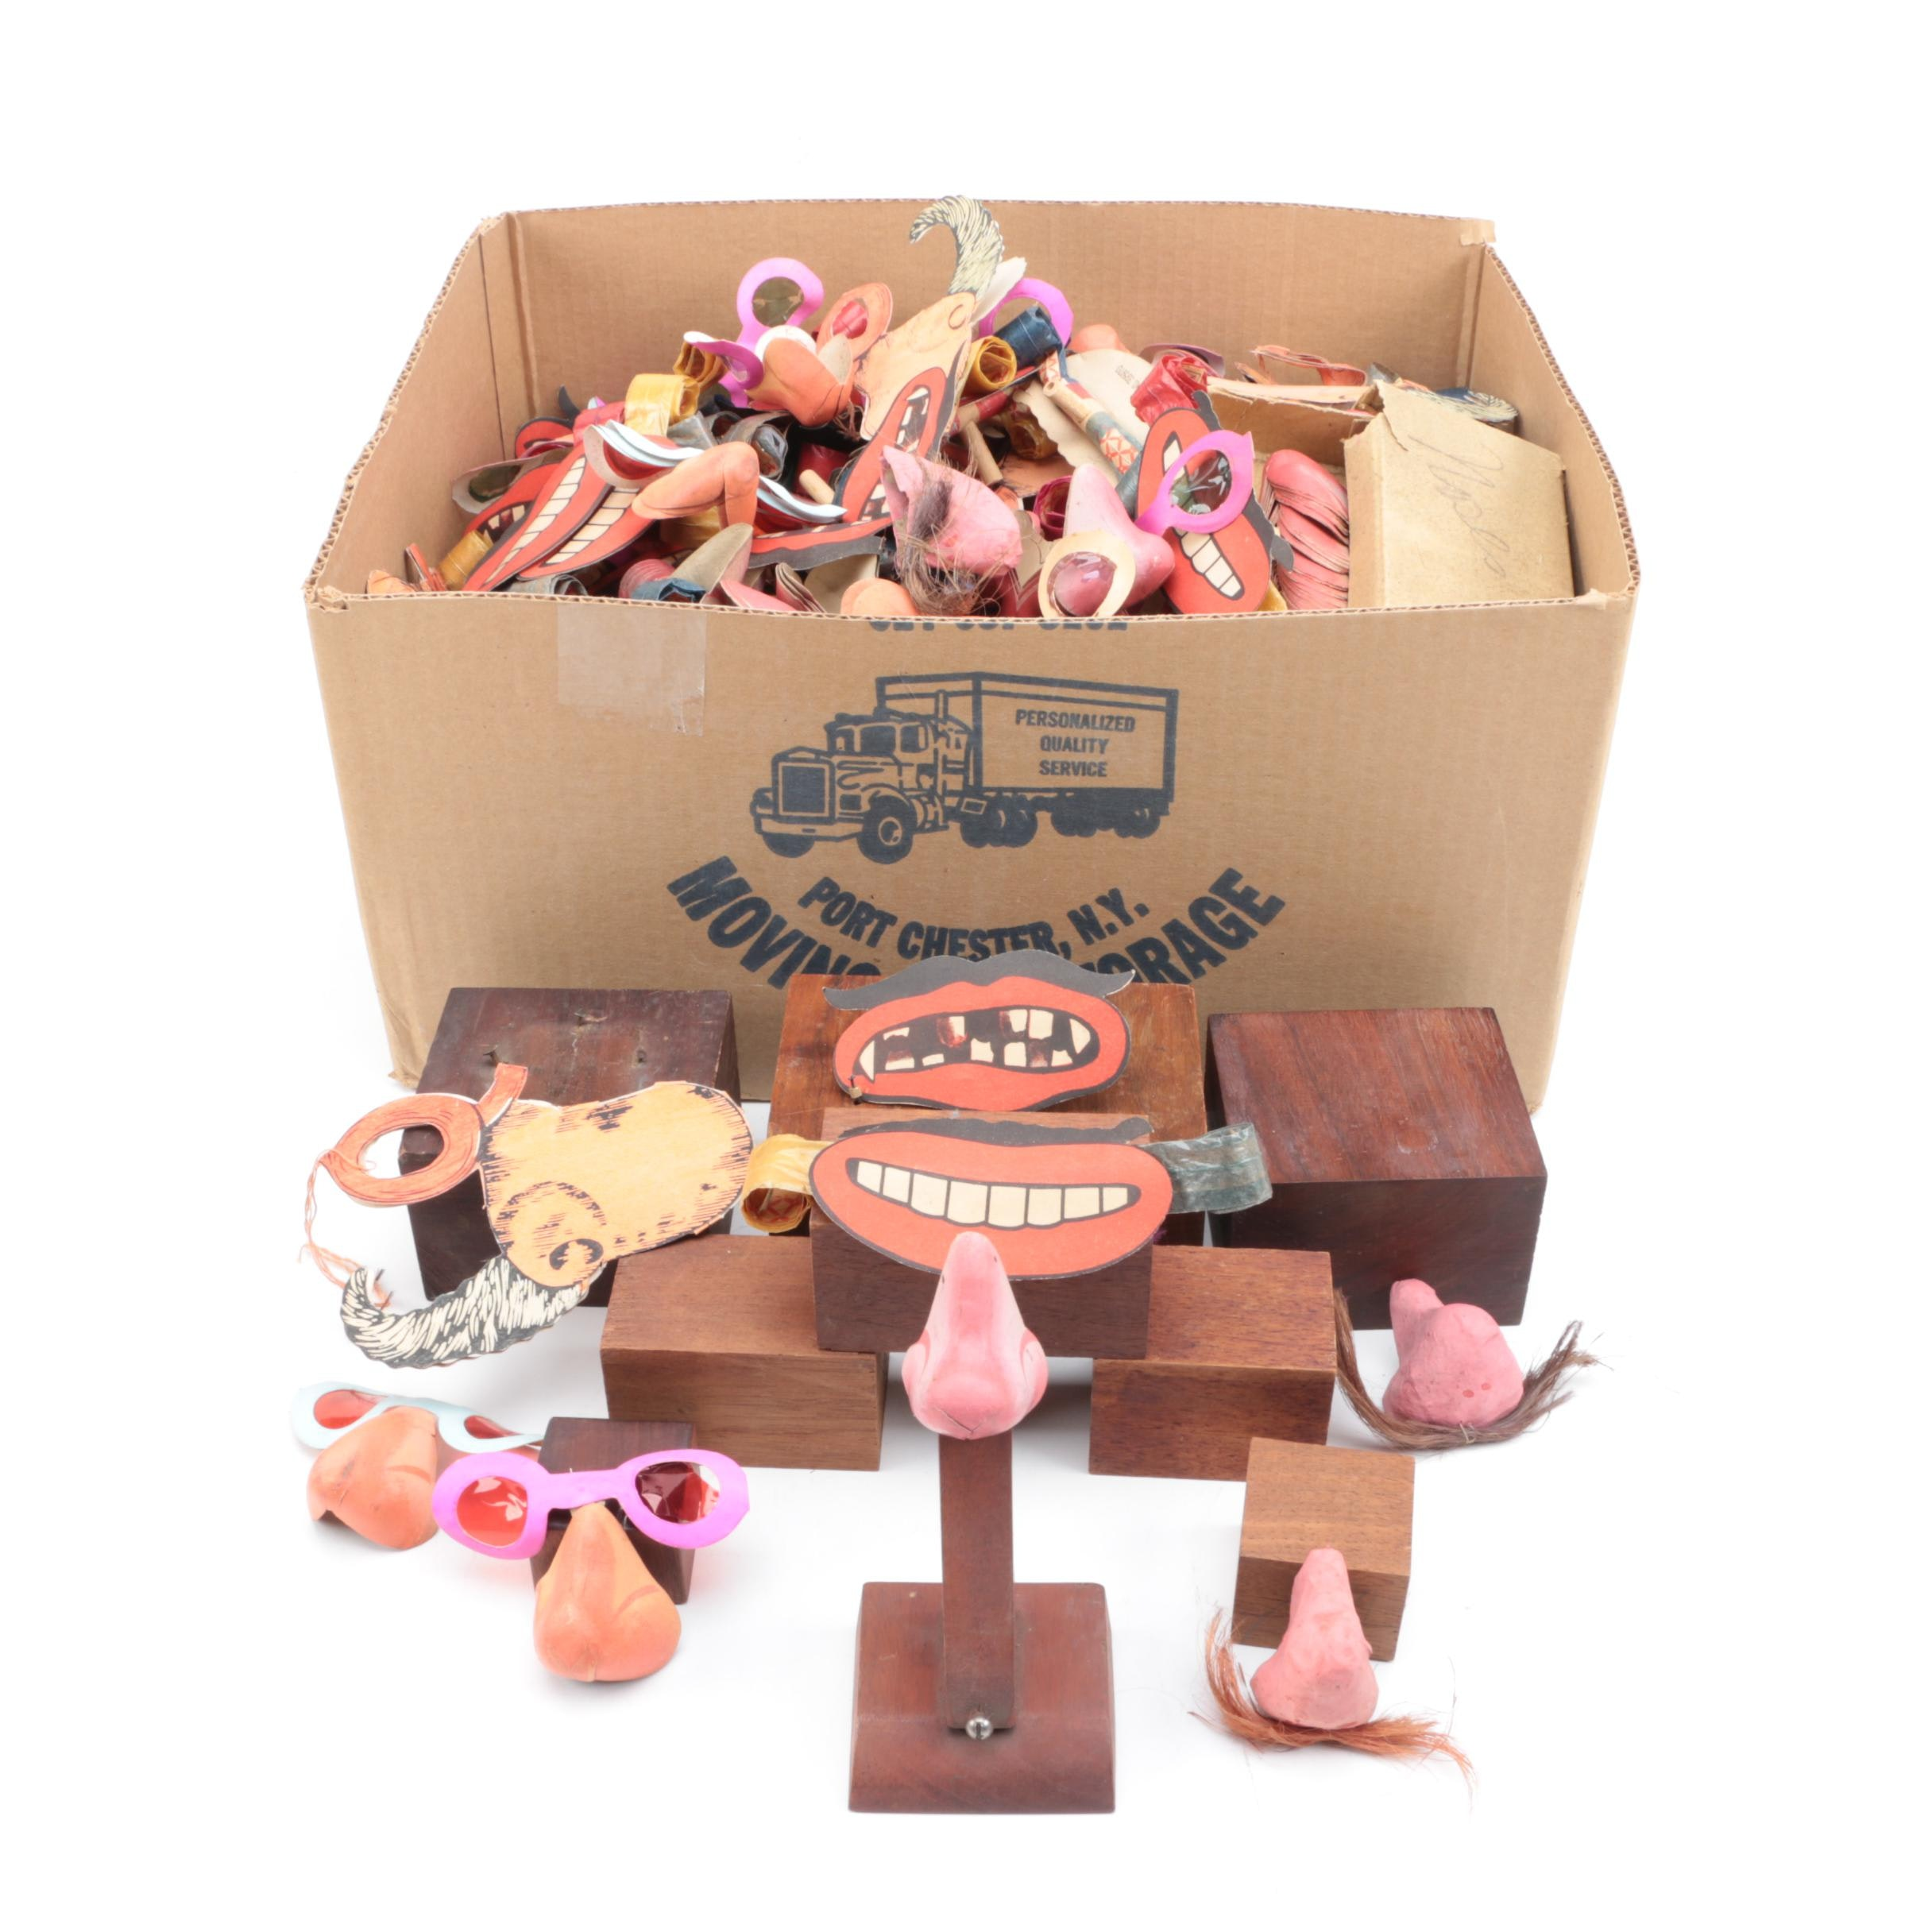 Paper Face Disguises and Party Favors with Wooden Stands